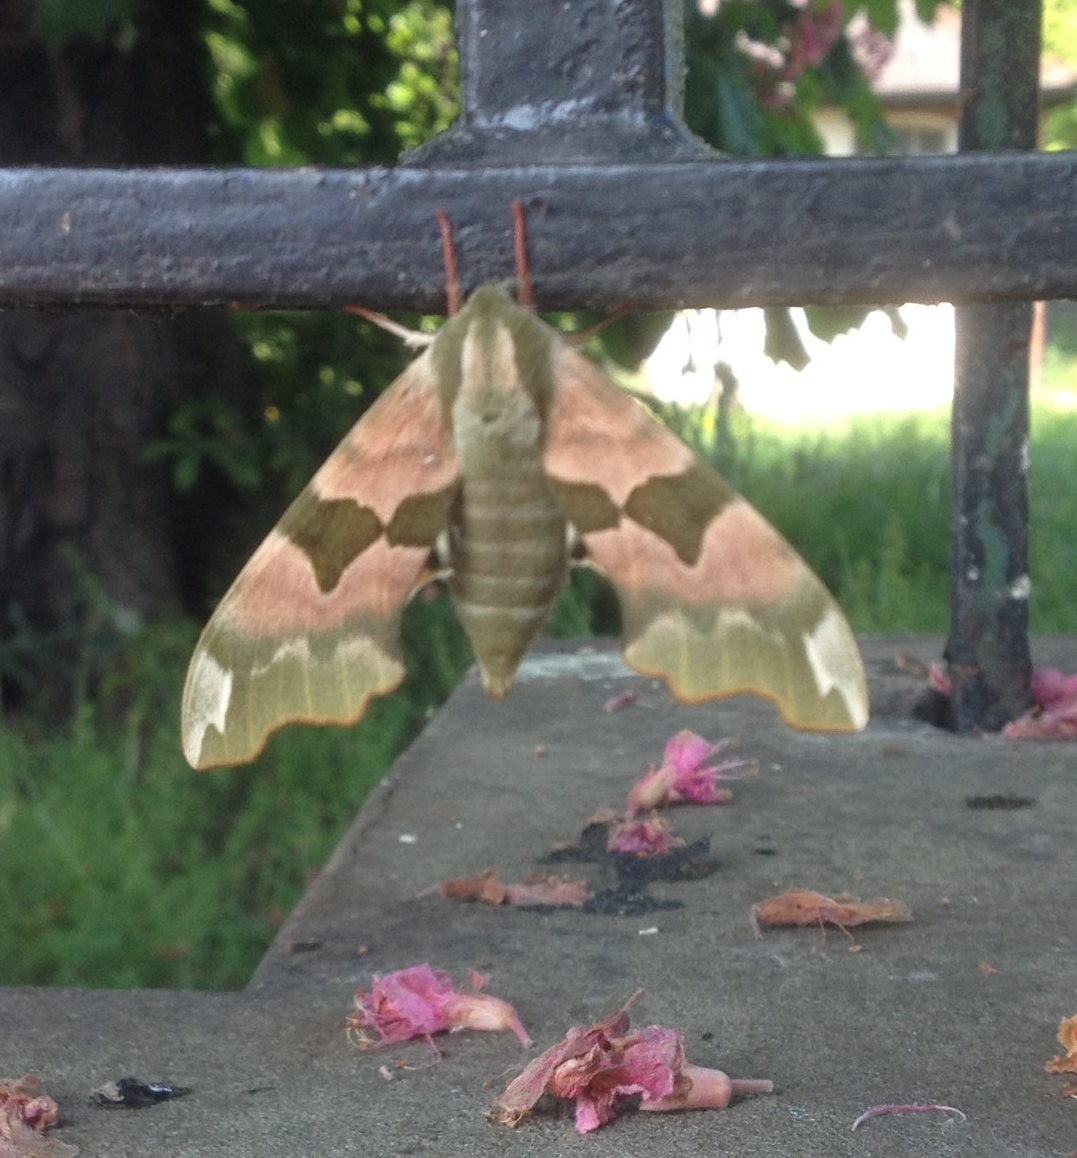 A moth clinging to the Park railings May 2017